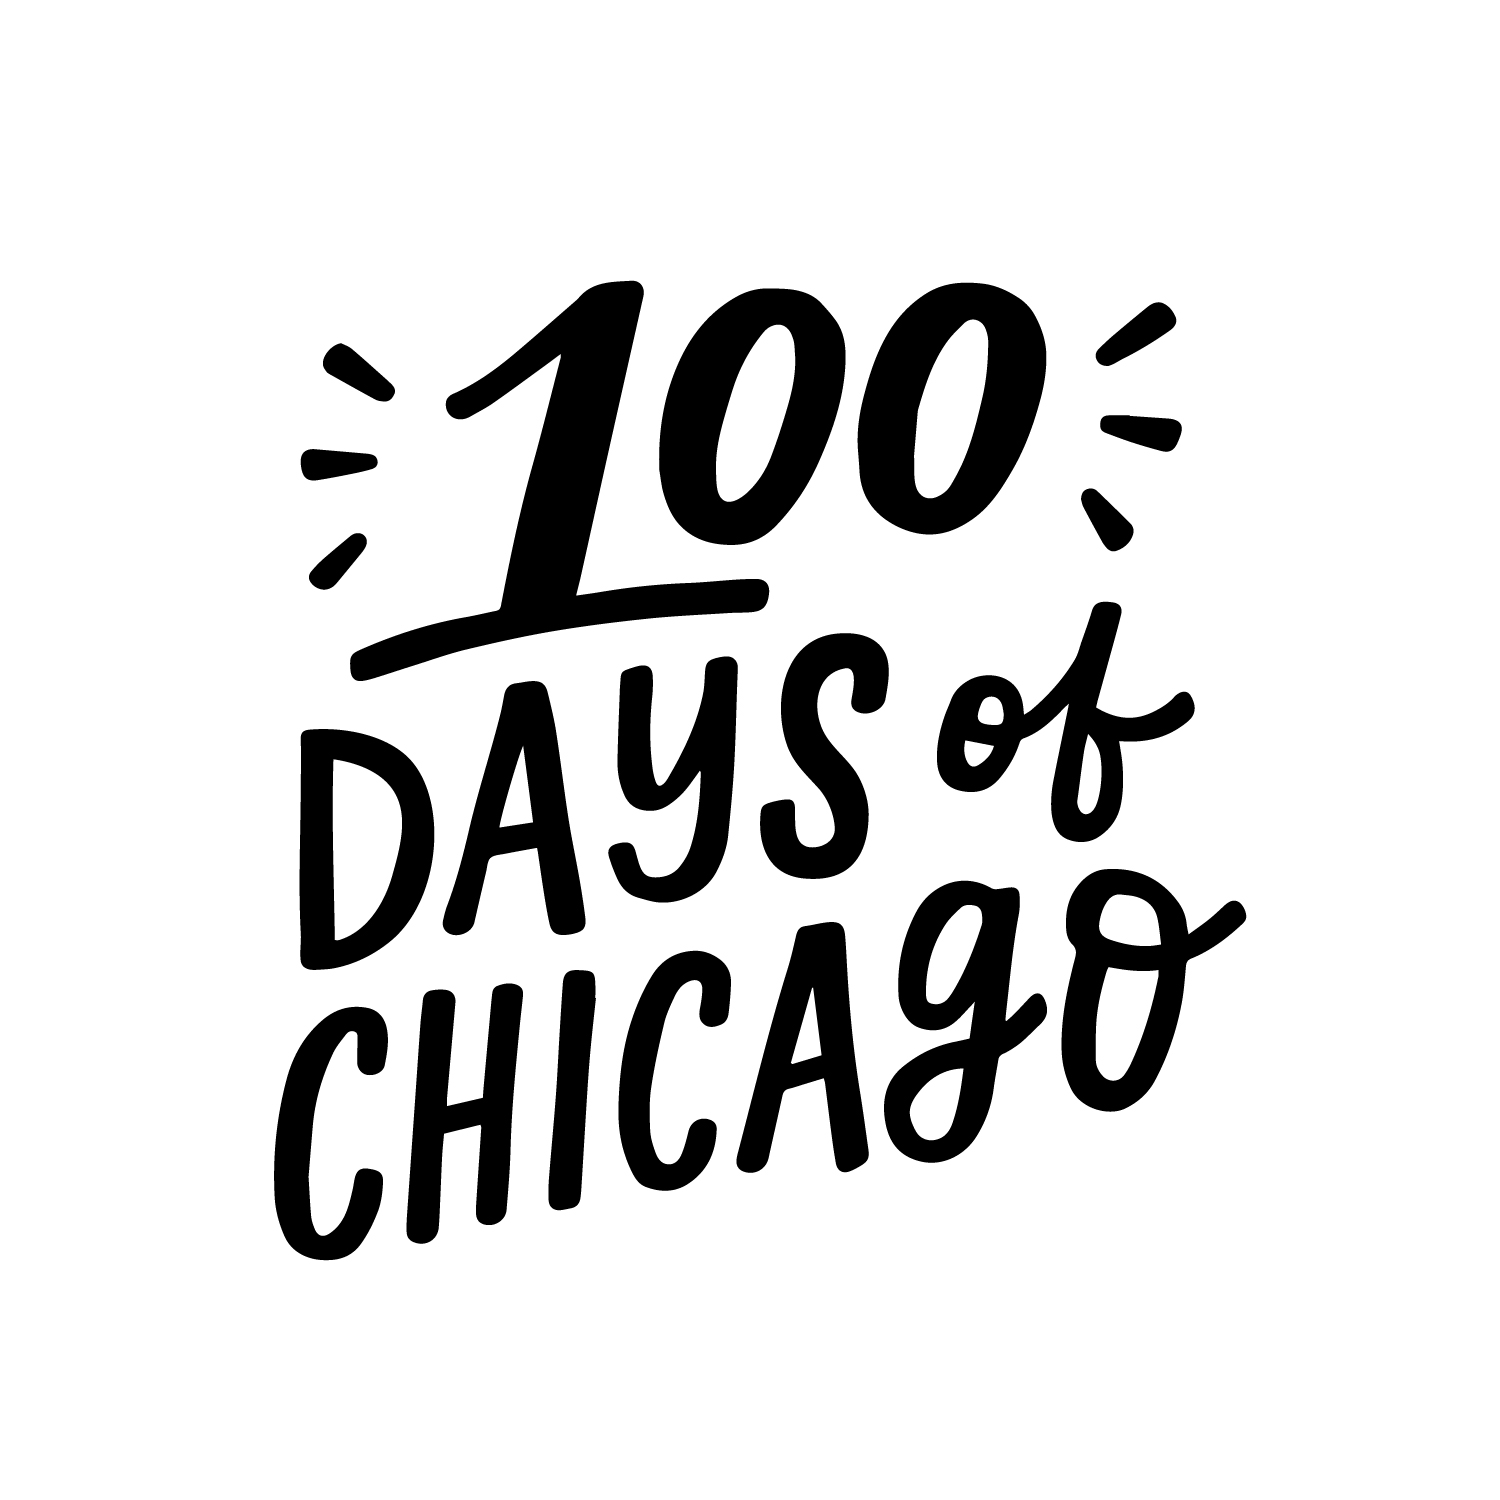 100 DAYS OF CHICAGO - We're spending 100 days showcasing local businesses, attractions, and events through the development of representative designs. Following suit with 100 Days of Peoria, this new iteration will put lettering and illustration to work to explore and appreciate all that our Chicago has to offer.